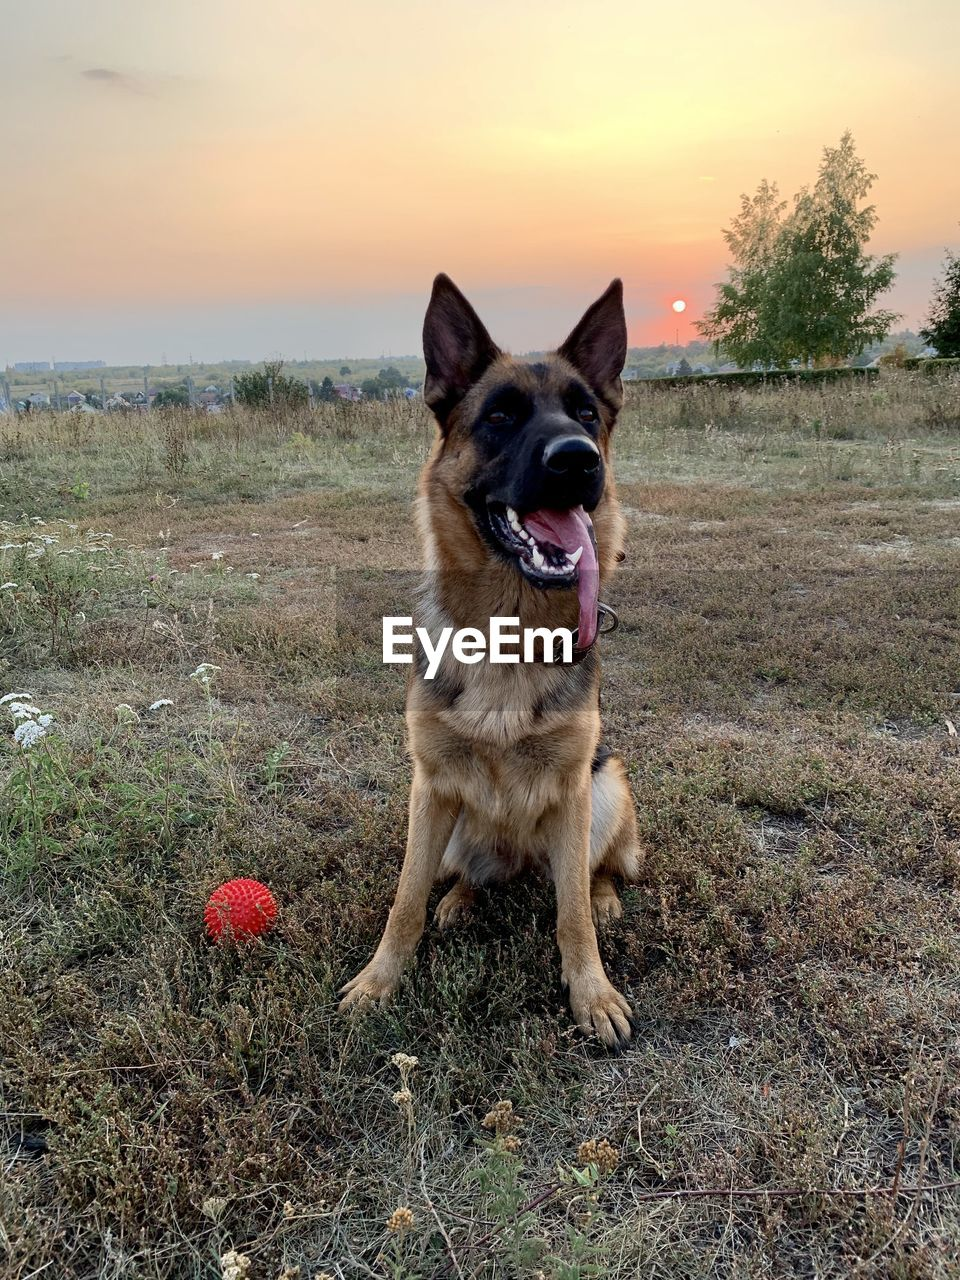 one animal, domestic, pets, domestic animals, dog, canine, mammal, animal themes, animal, vertebrate, land, plant, sky, sunset, field, nature, german shepherd, sticking out tongue, no people, facial expression, mouth open, panting